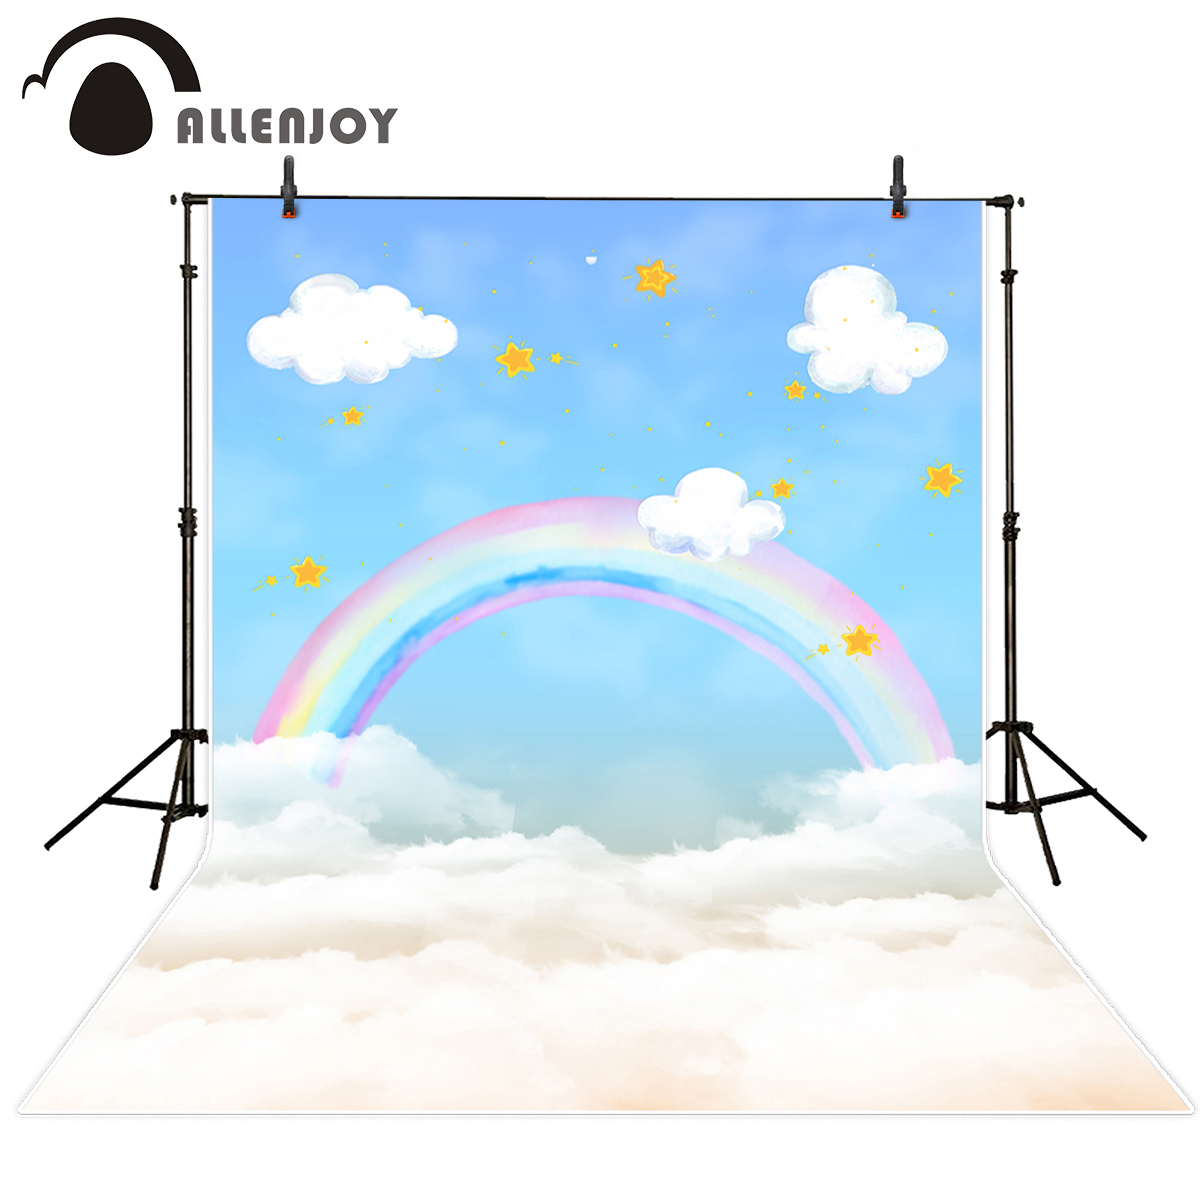 Allenjoy Vinyl photography The sky Stars Gold Rainbow cloud photography backdrop personal custom Partner name backdrop wb 33 2 коробка прямоугольная морской бриз